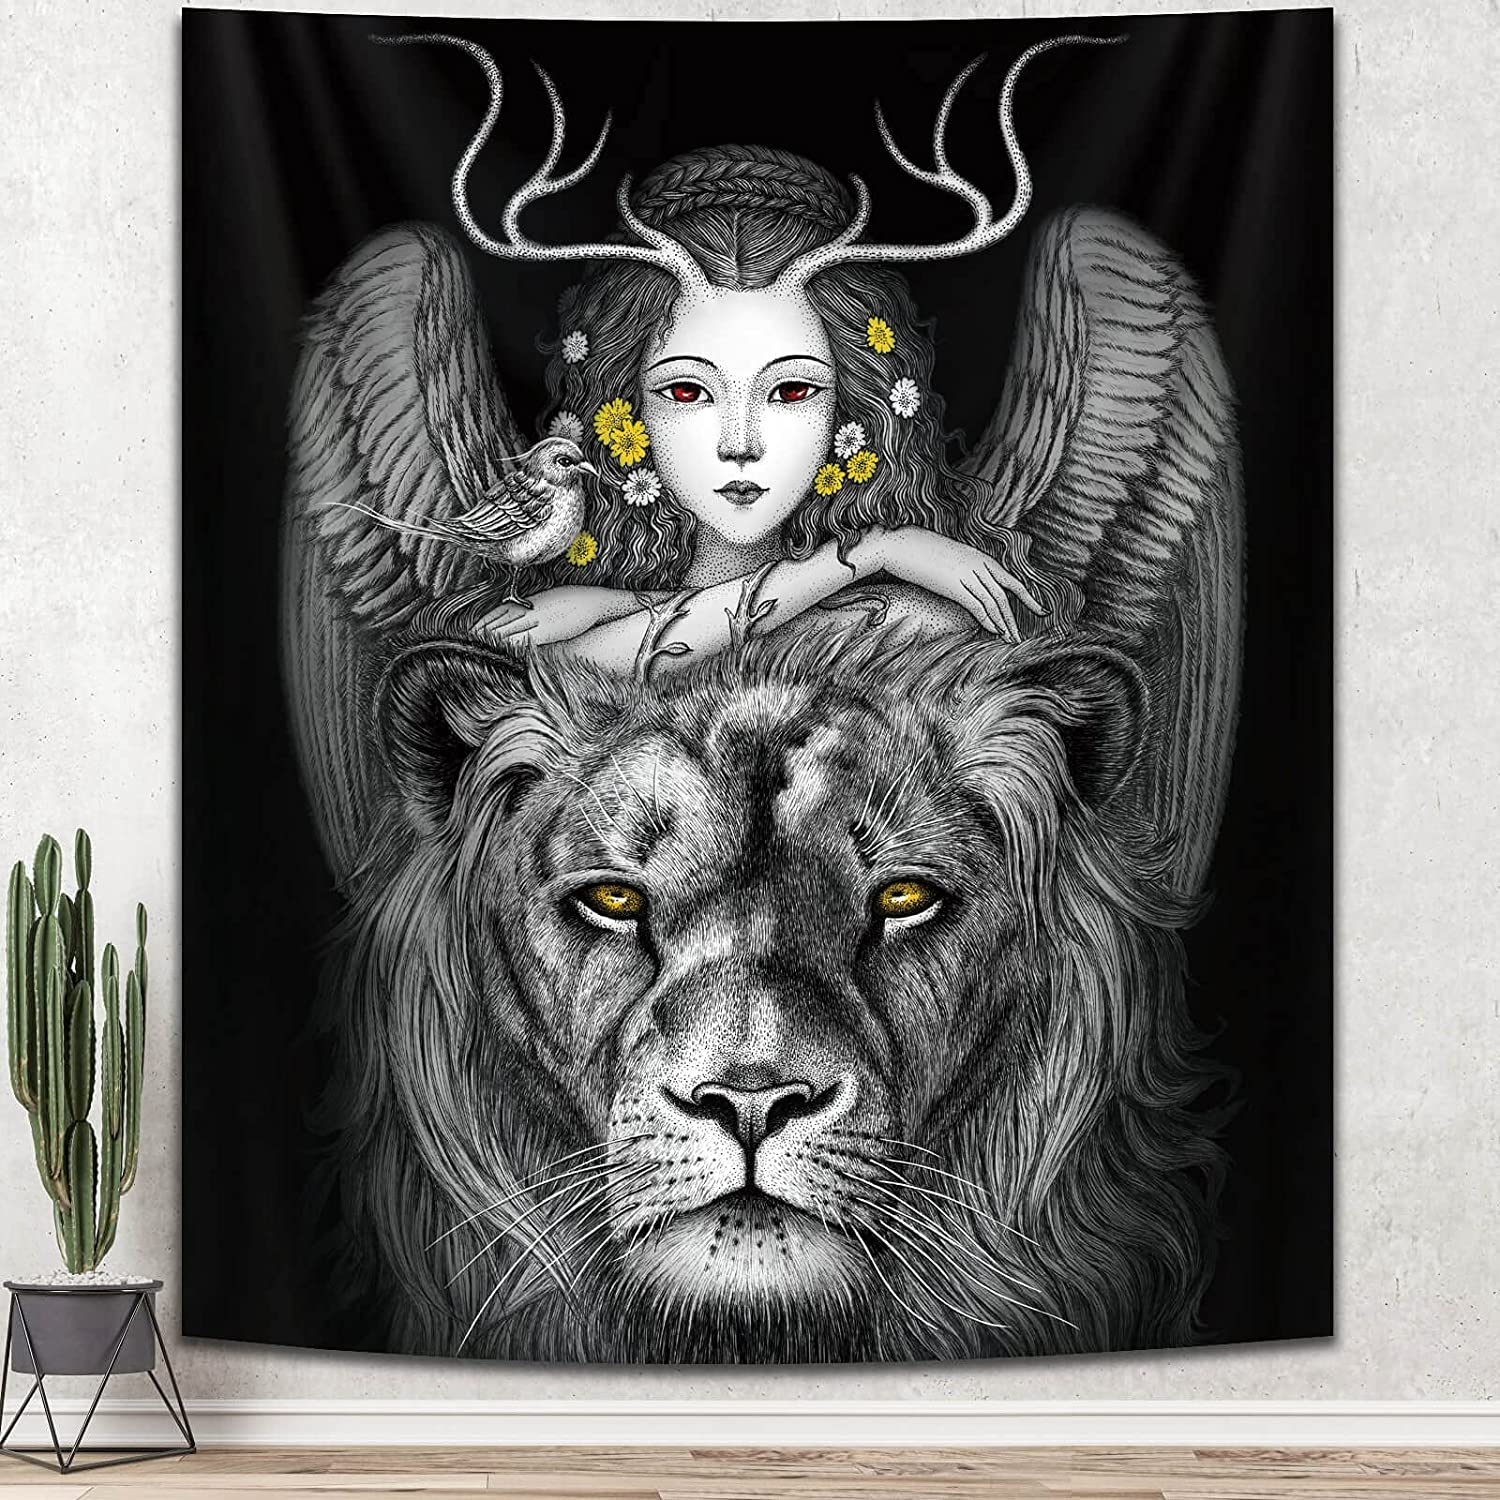 Hippie Girl Flower Tapestry, Black and White Lion Tapestry for Wall Hanging Decor, Bedroom Aesthetics Bohemian Tapestry for Teen Girl Dorm,Living Room,Home (59 x 51 inches)